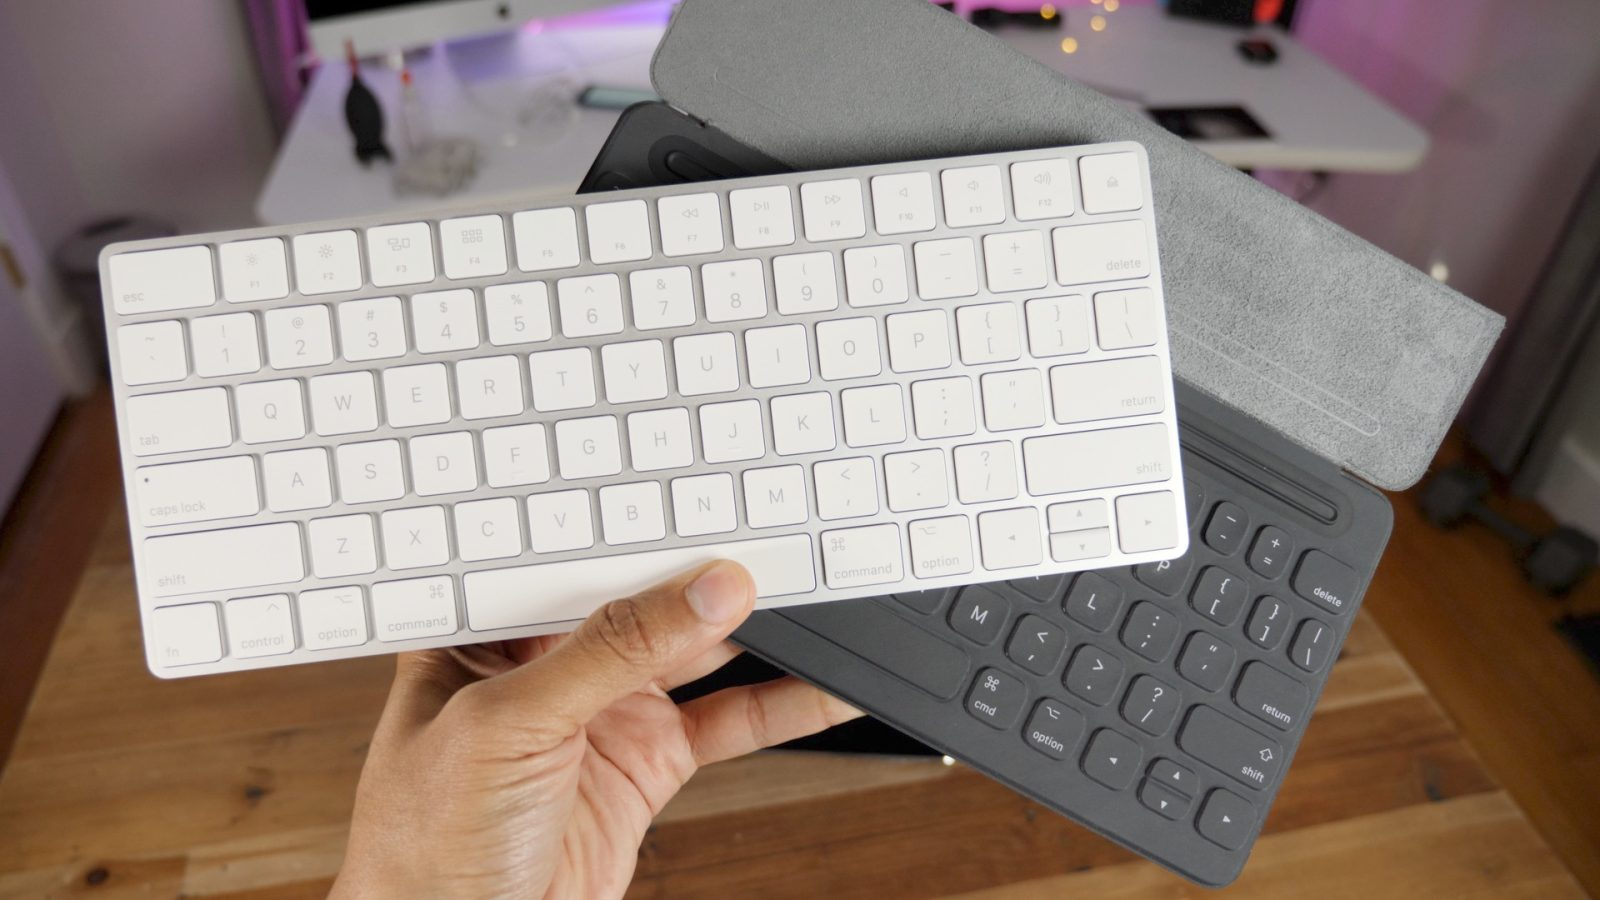 4e494e94219 iPad Pro: Smart Keyboard vs Magic Keyboard – which one should you choose?  [Video]